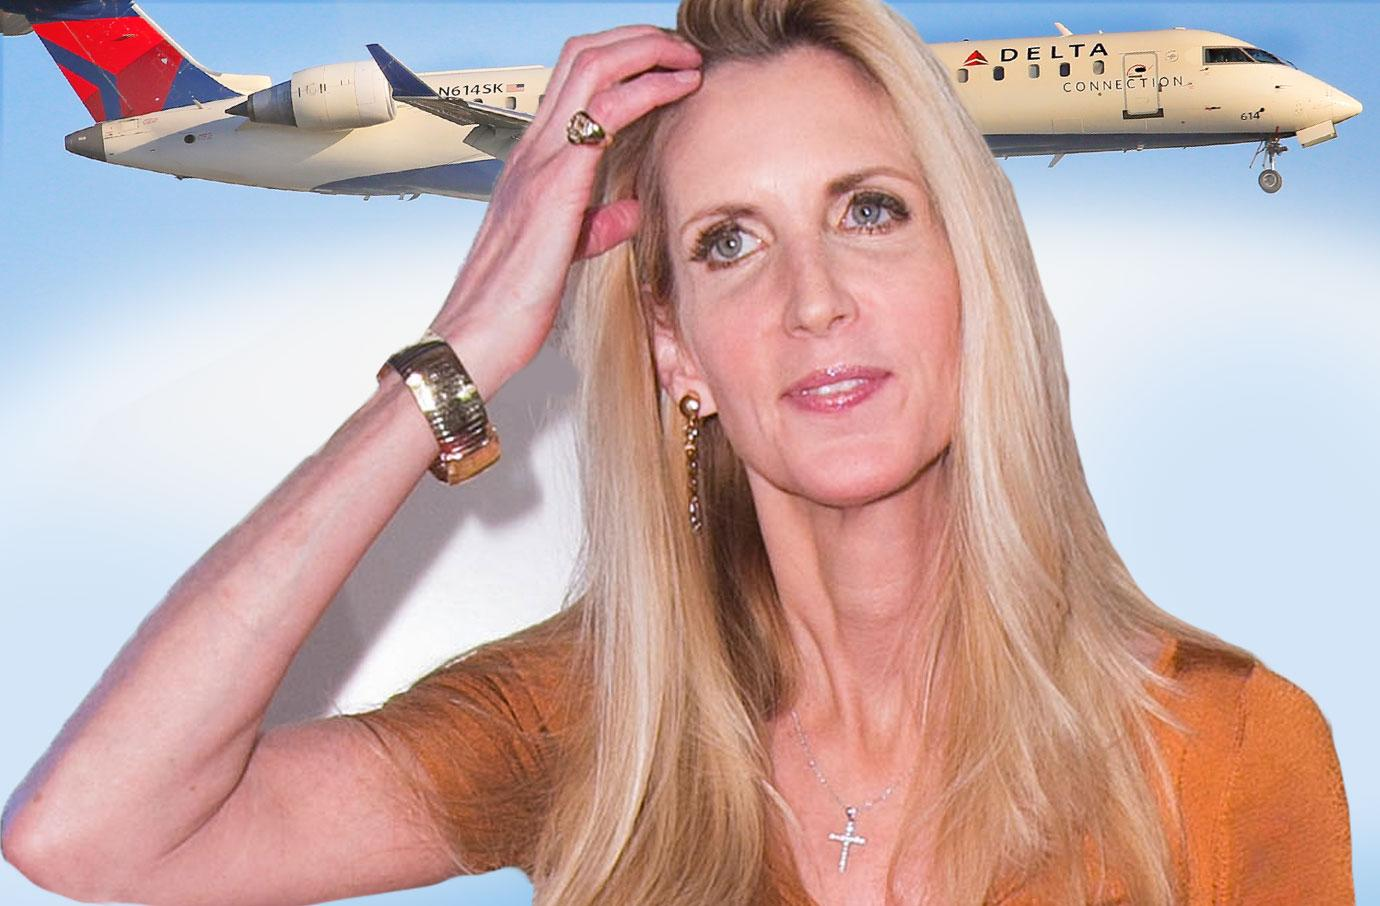 Ann Coulter Blasts Delta For Booting Her From Assigned Airplane Seat